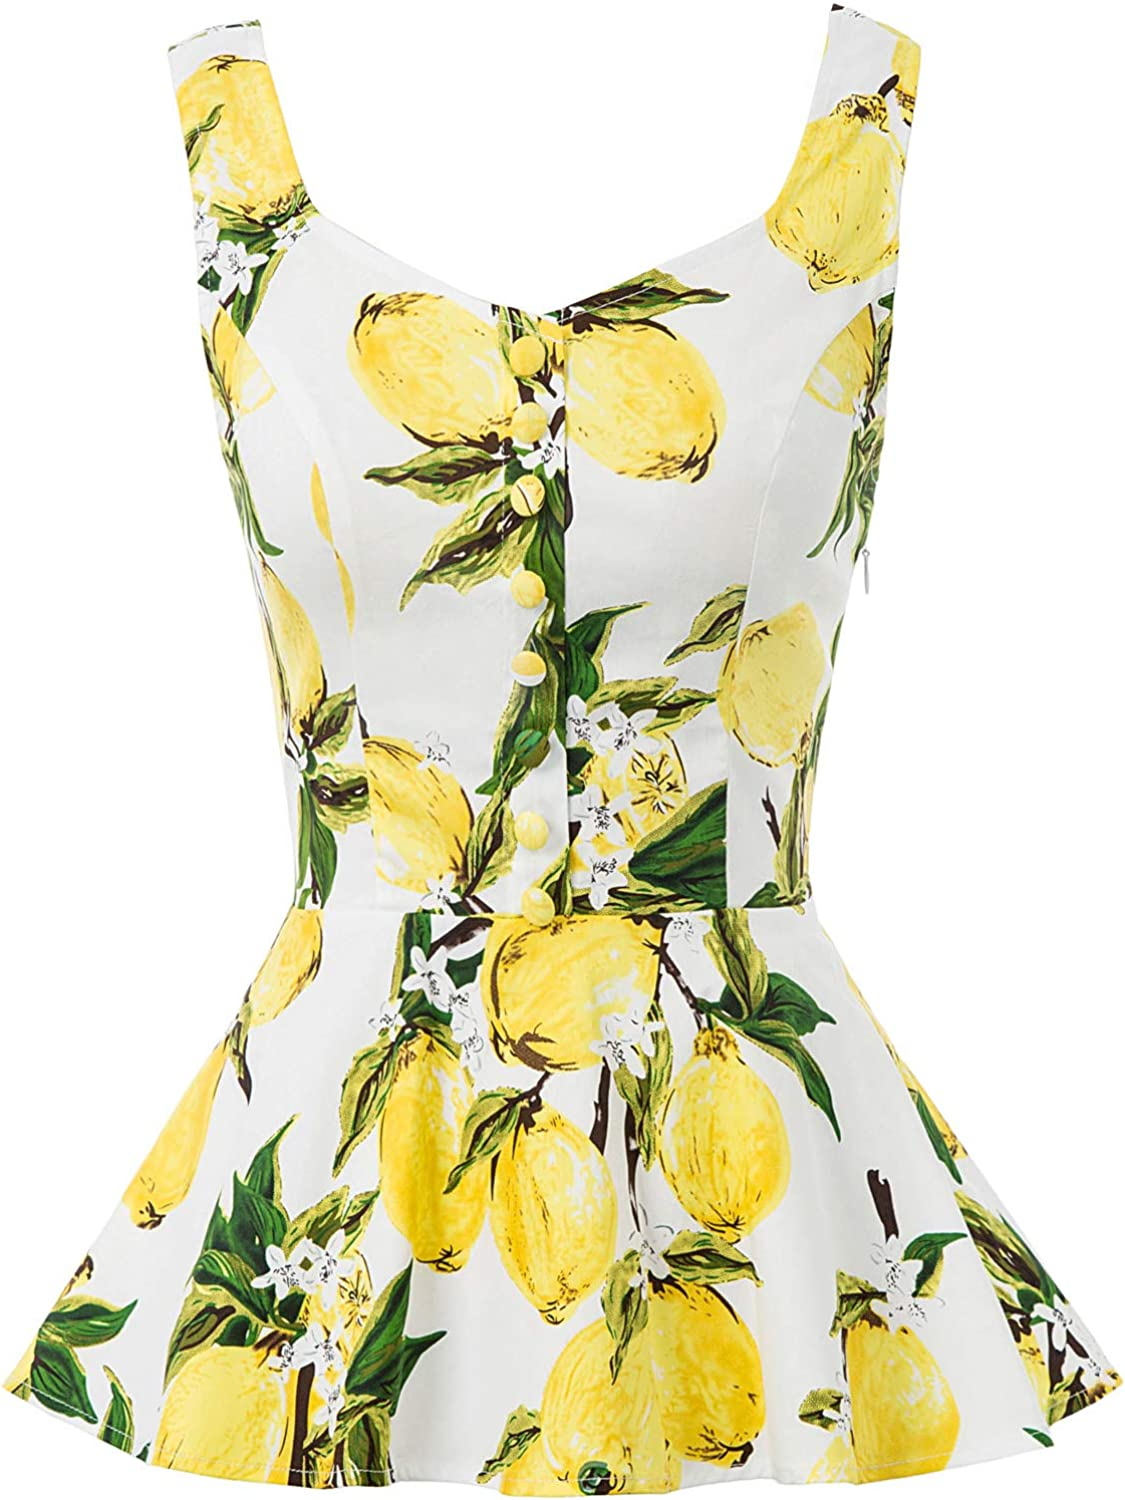 Belle Poque Womens Vintage Sleeveless Tank Top Floral Print Peplum Top BPS02084